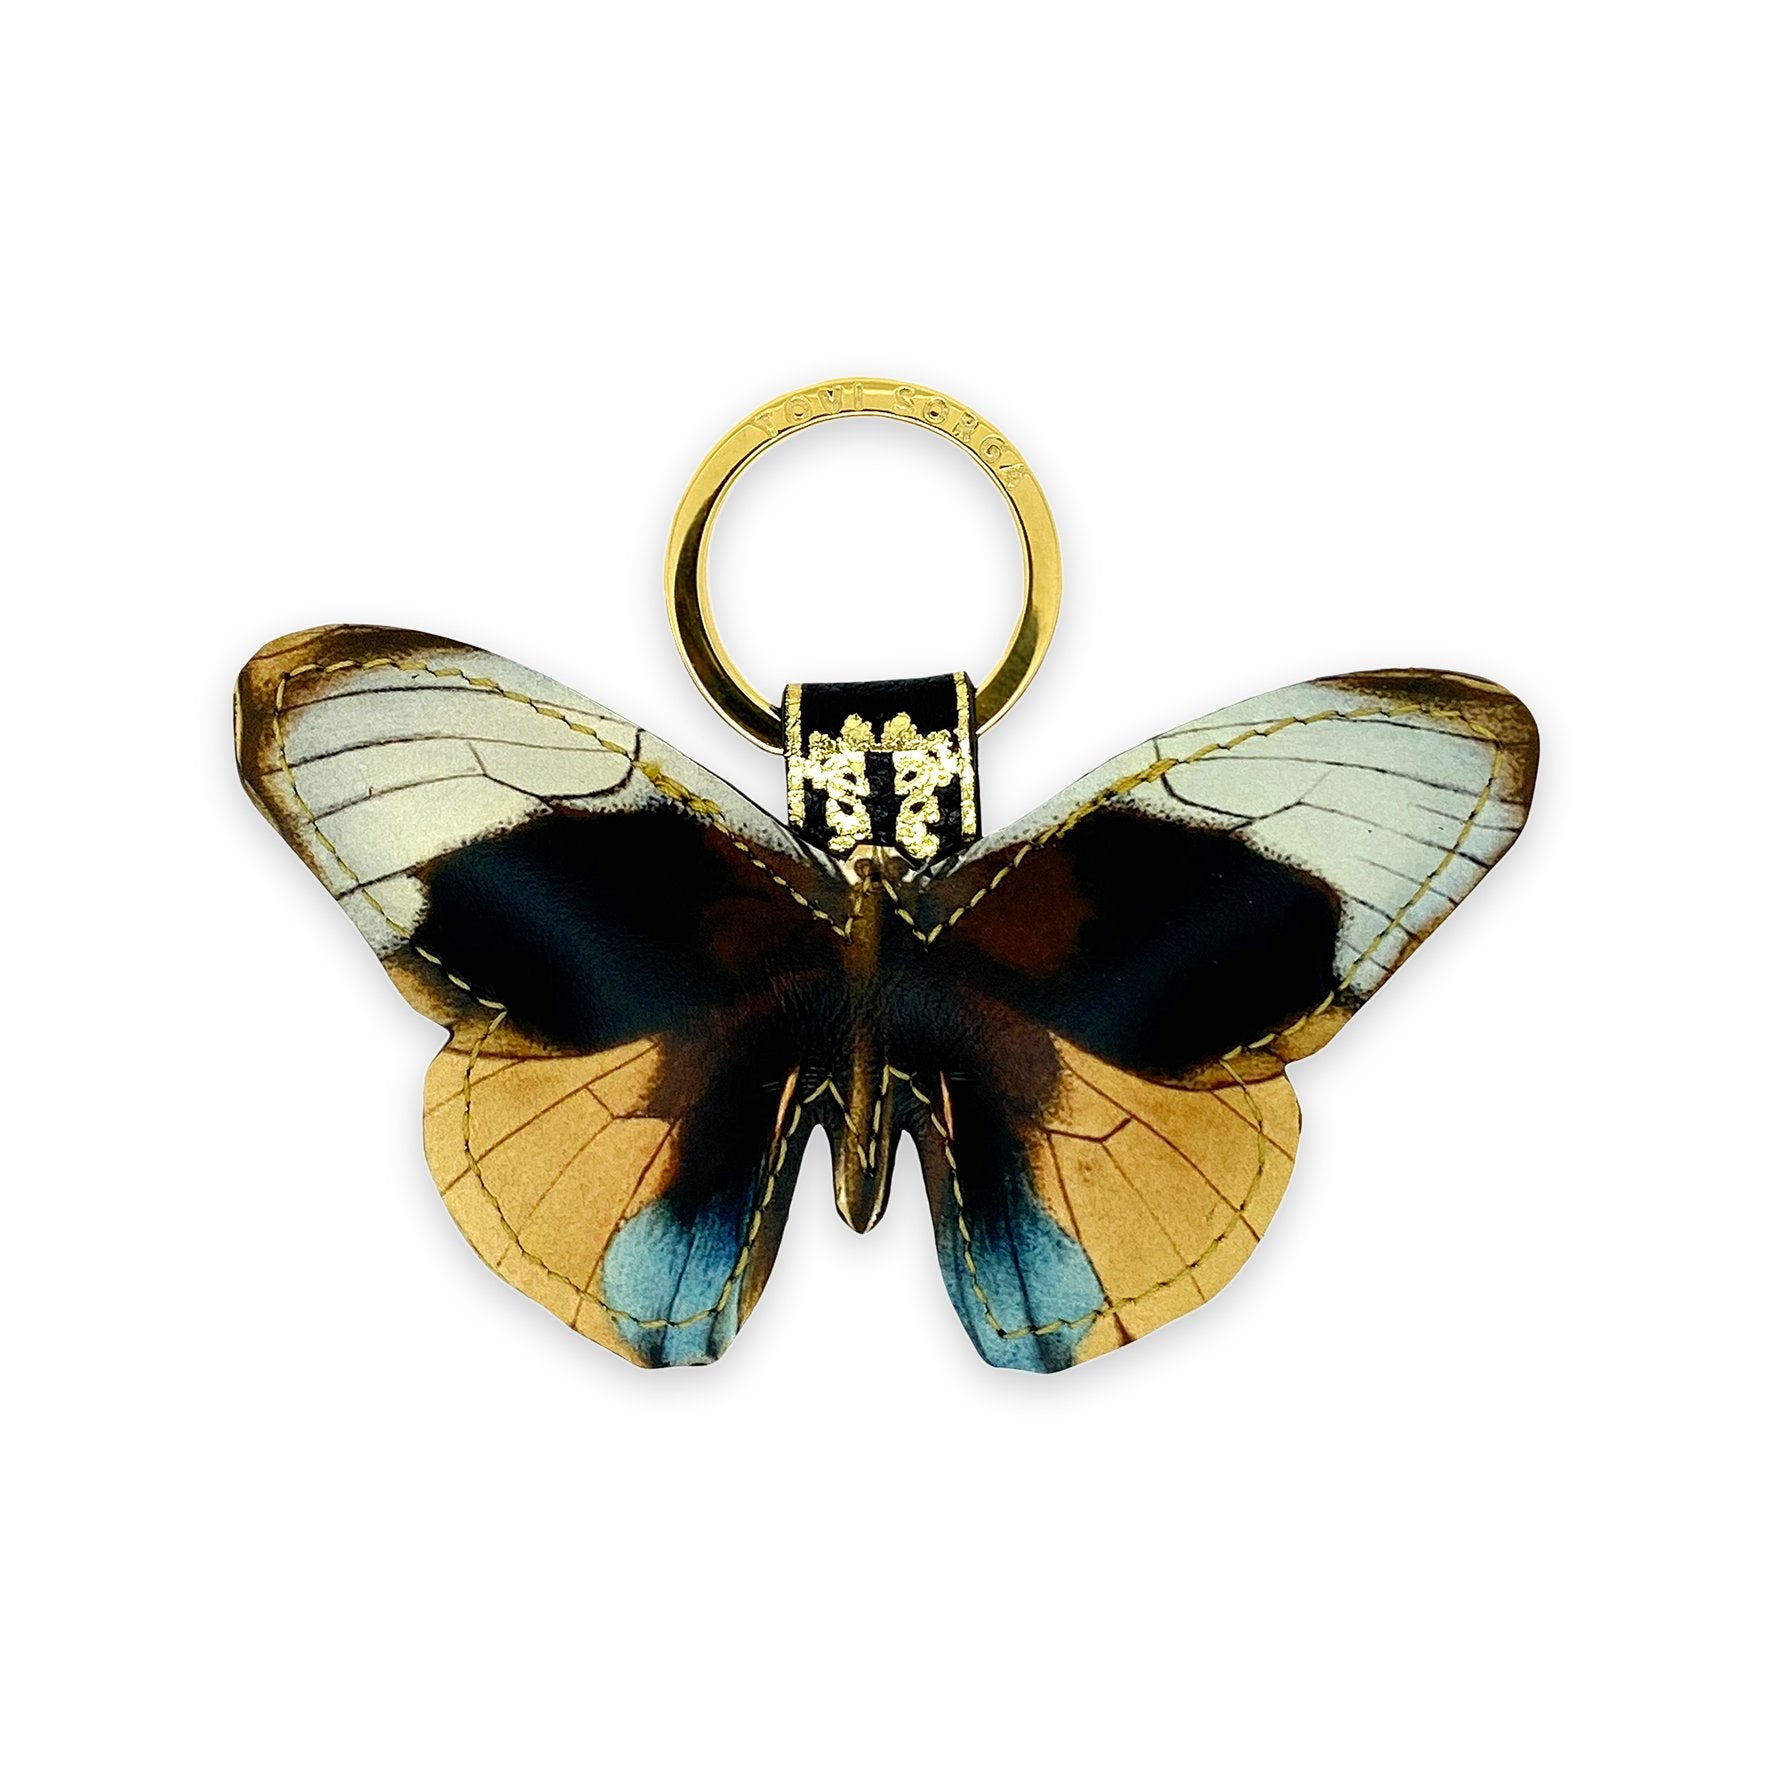 Leather Key Ring - Dusk Butterfly Key Ring / Bag Charm Tovi Sorga